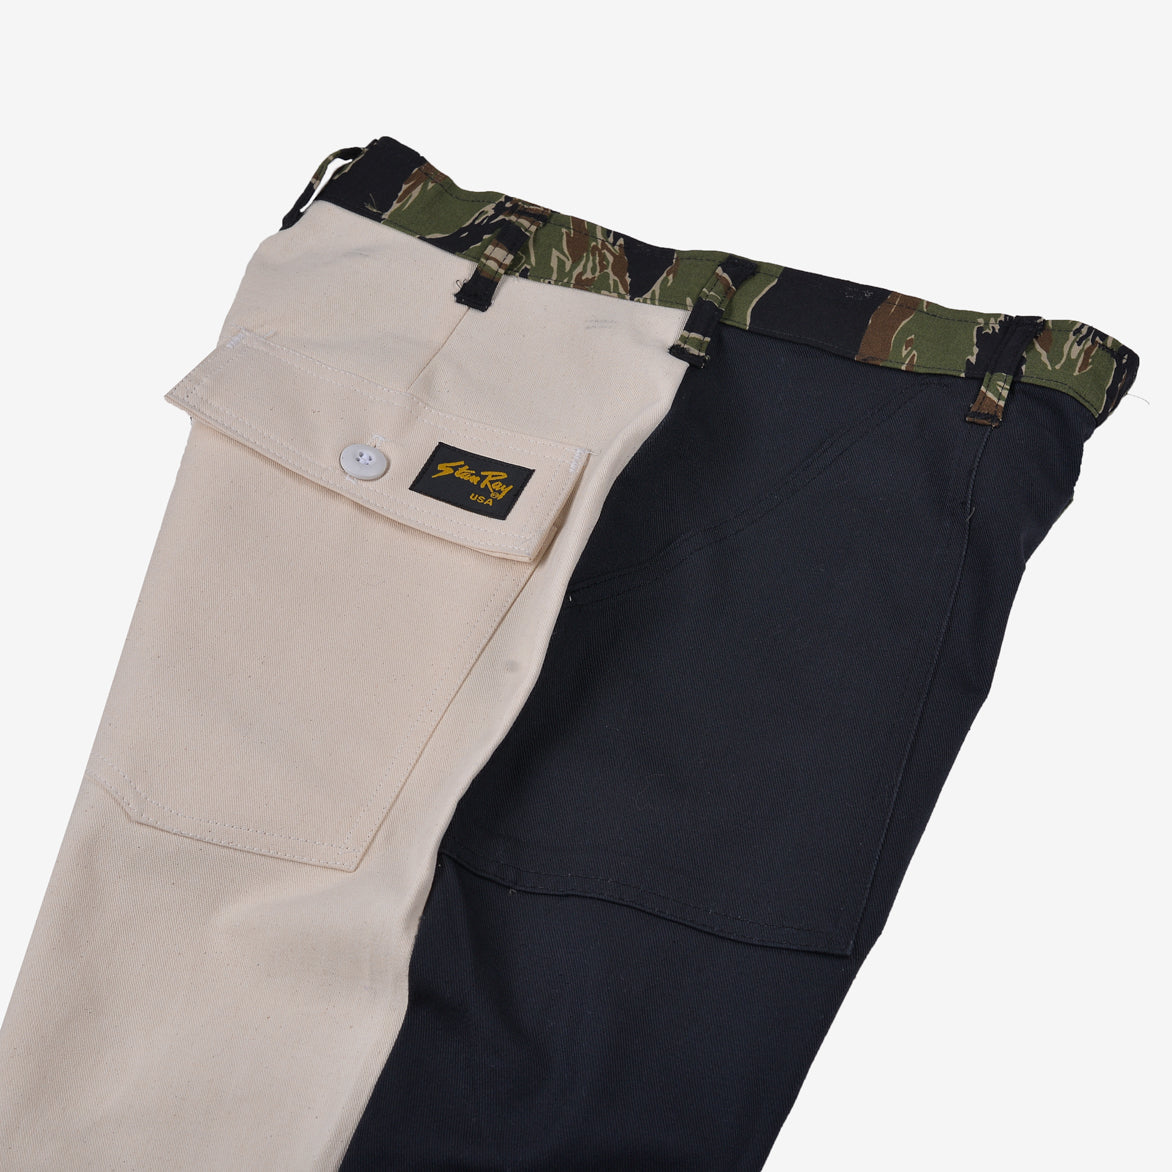 RECONSTRUCT TAPER FATIGUE PANT - NAVY / WOODLAND (2)